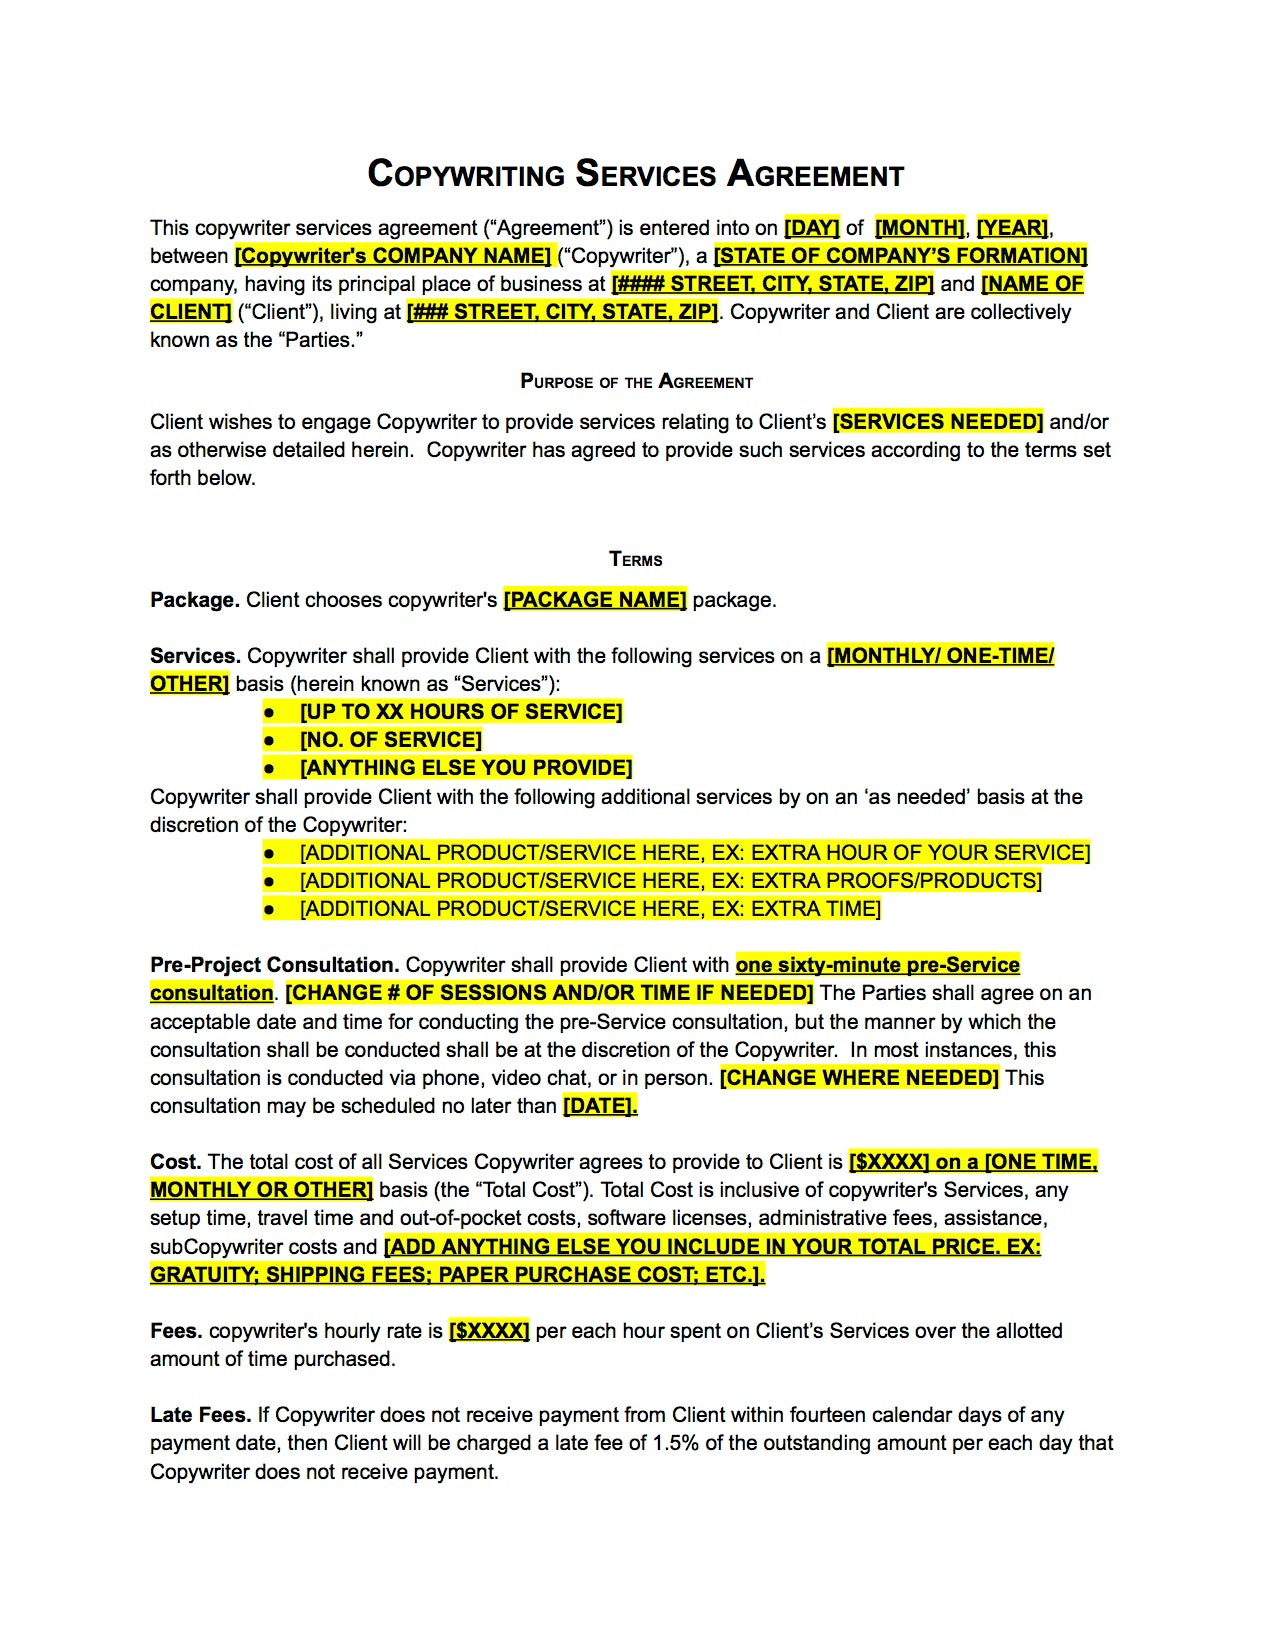 Copywriter Agreement Contract Template